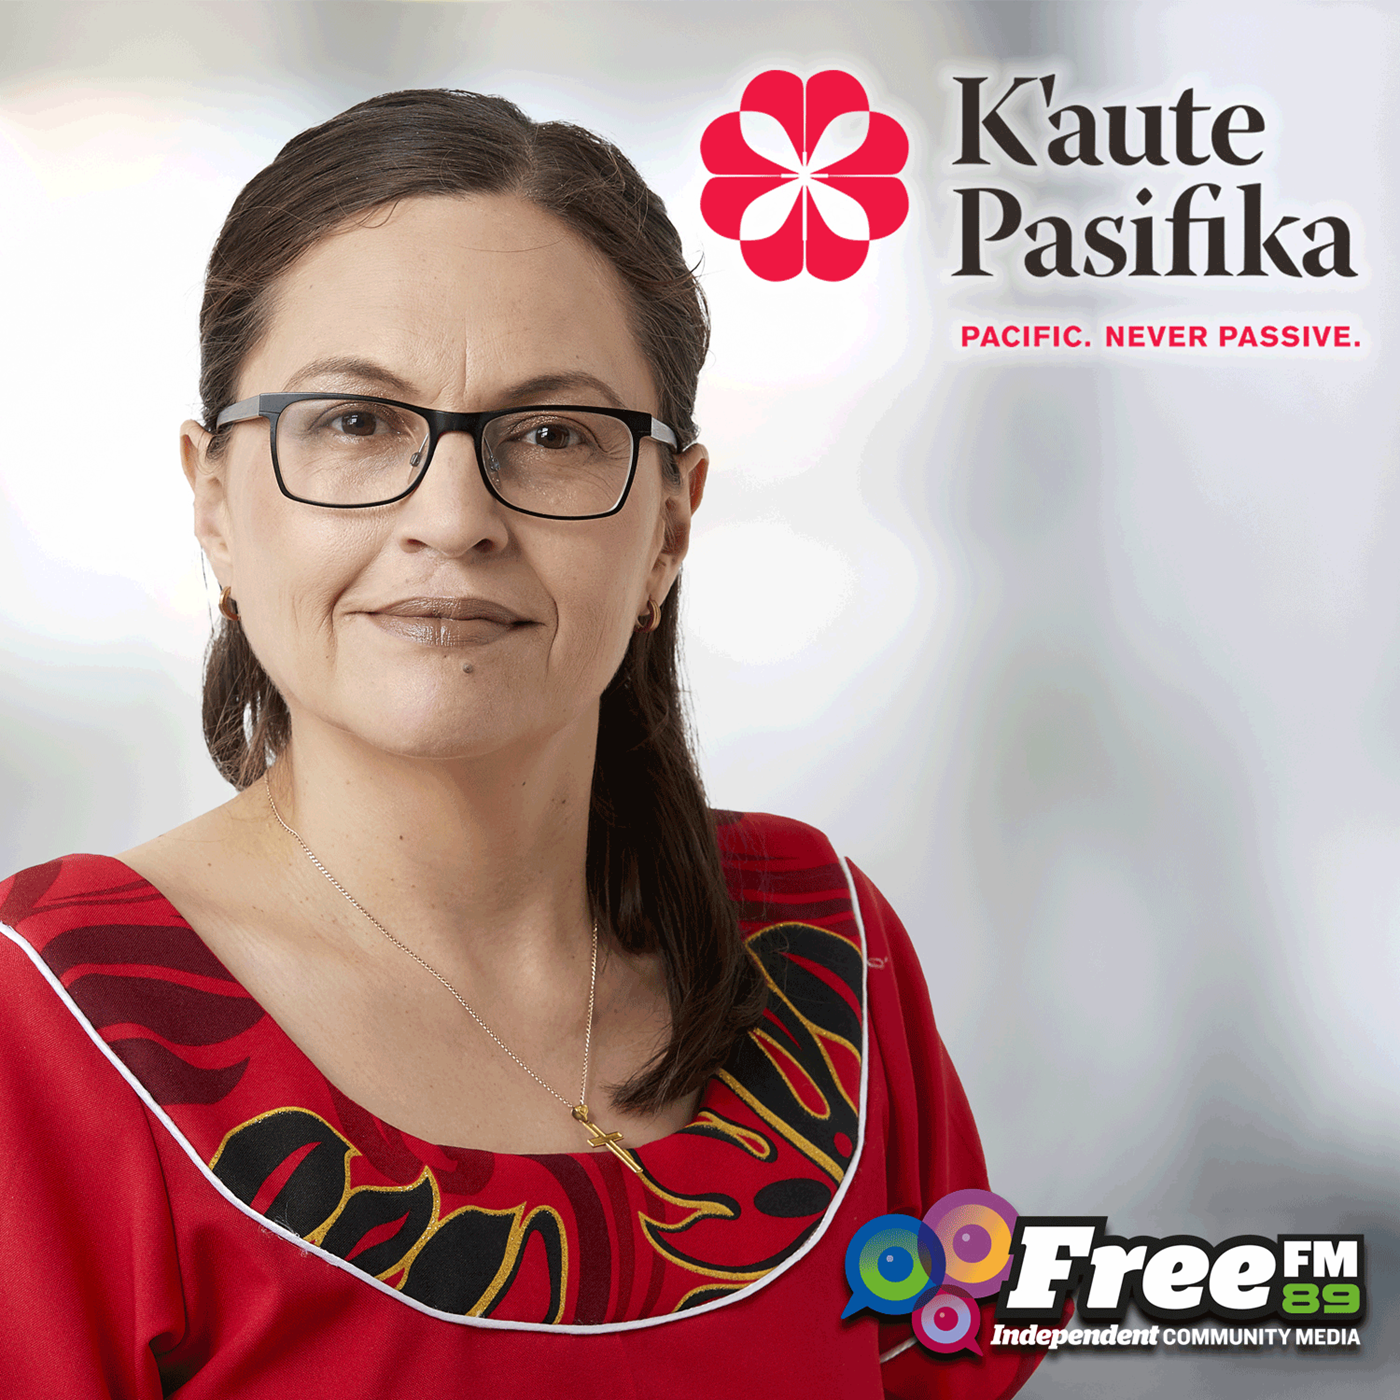 K'aute Pasifika on Air